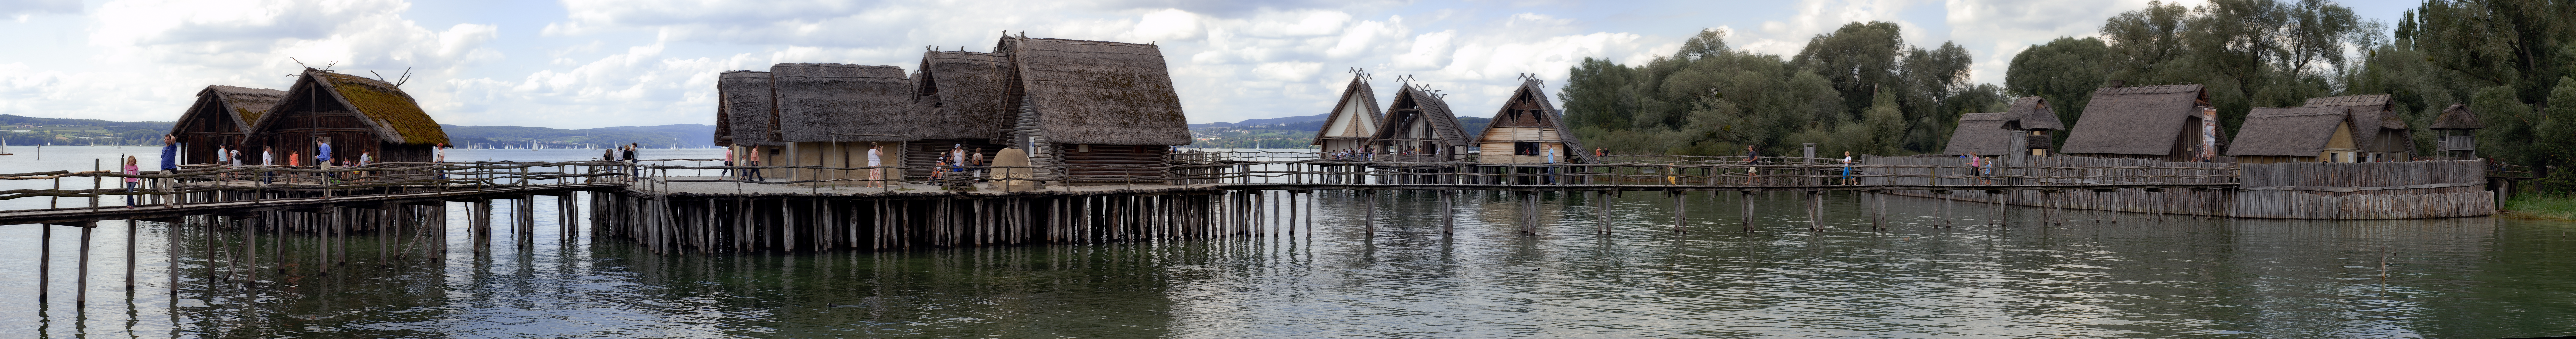 The rebuilt wooden huts of the settlement at the4 Bodensee (per Wikimedia)